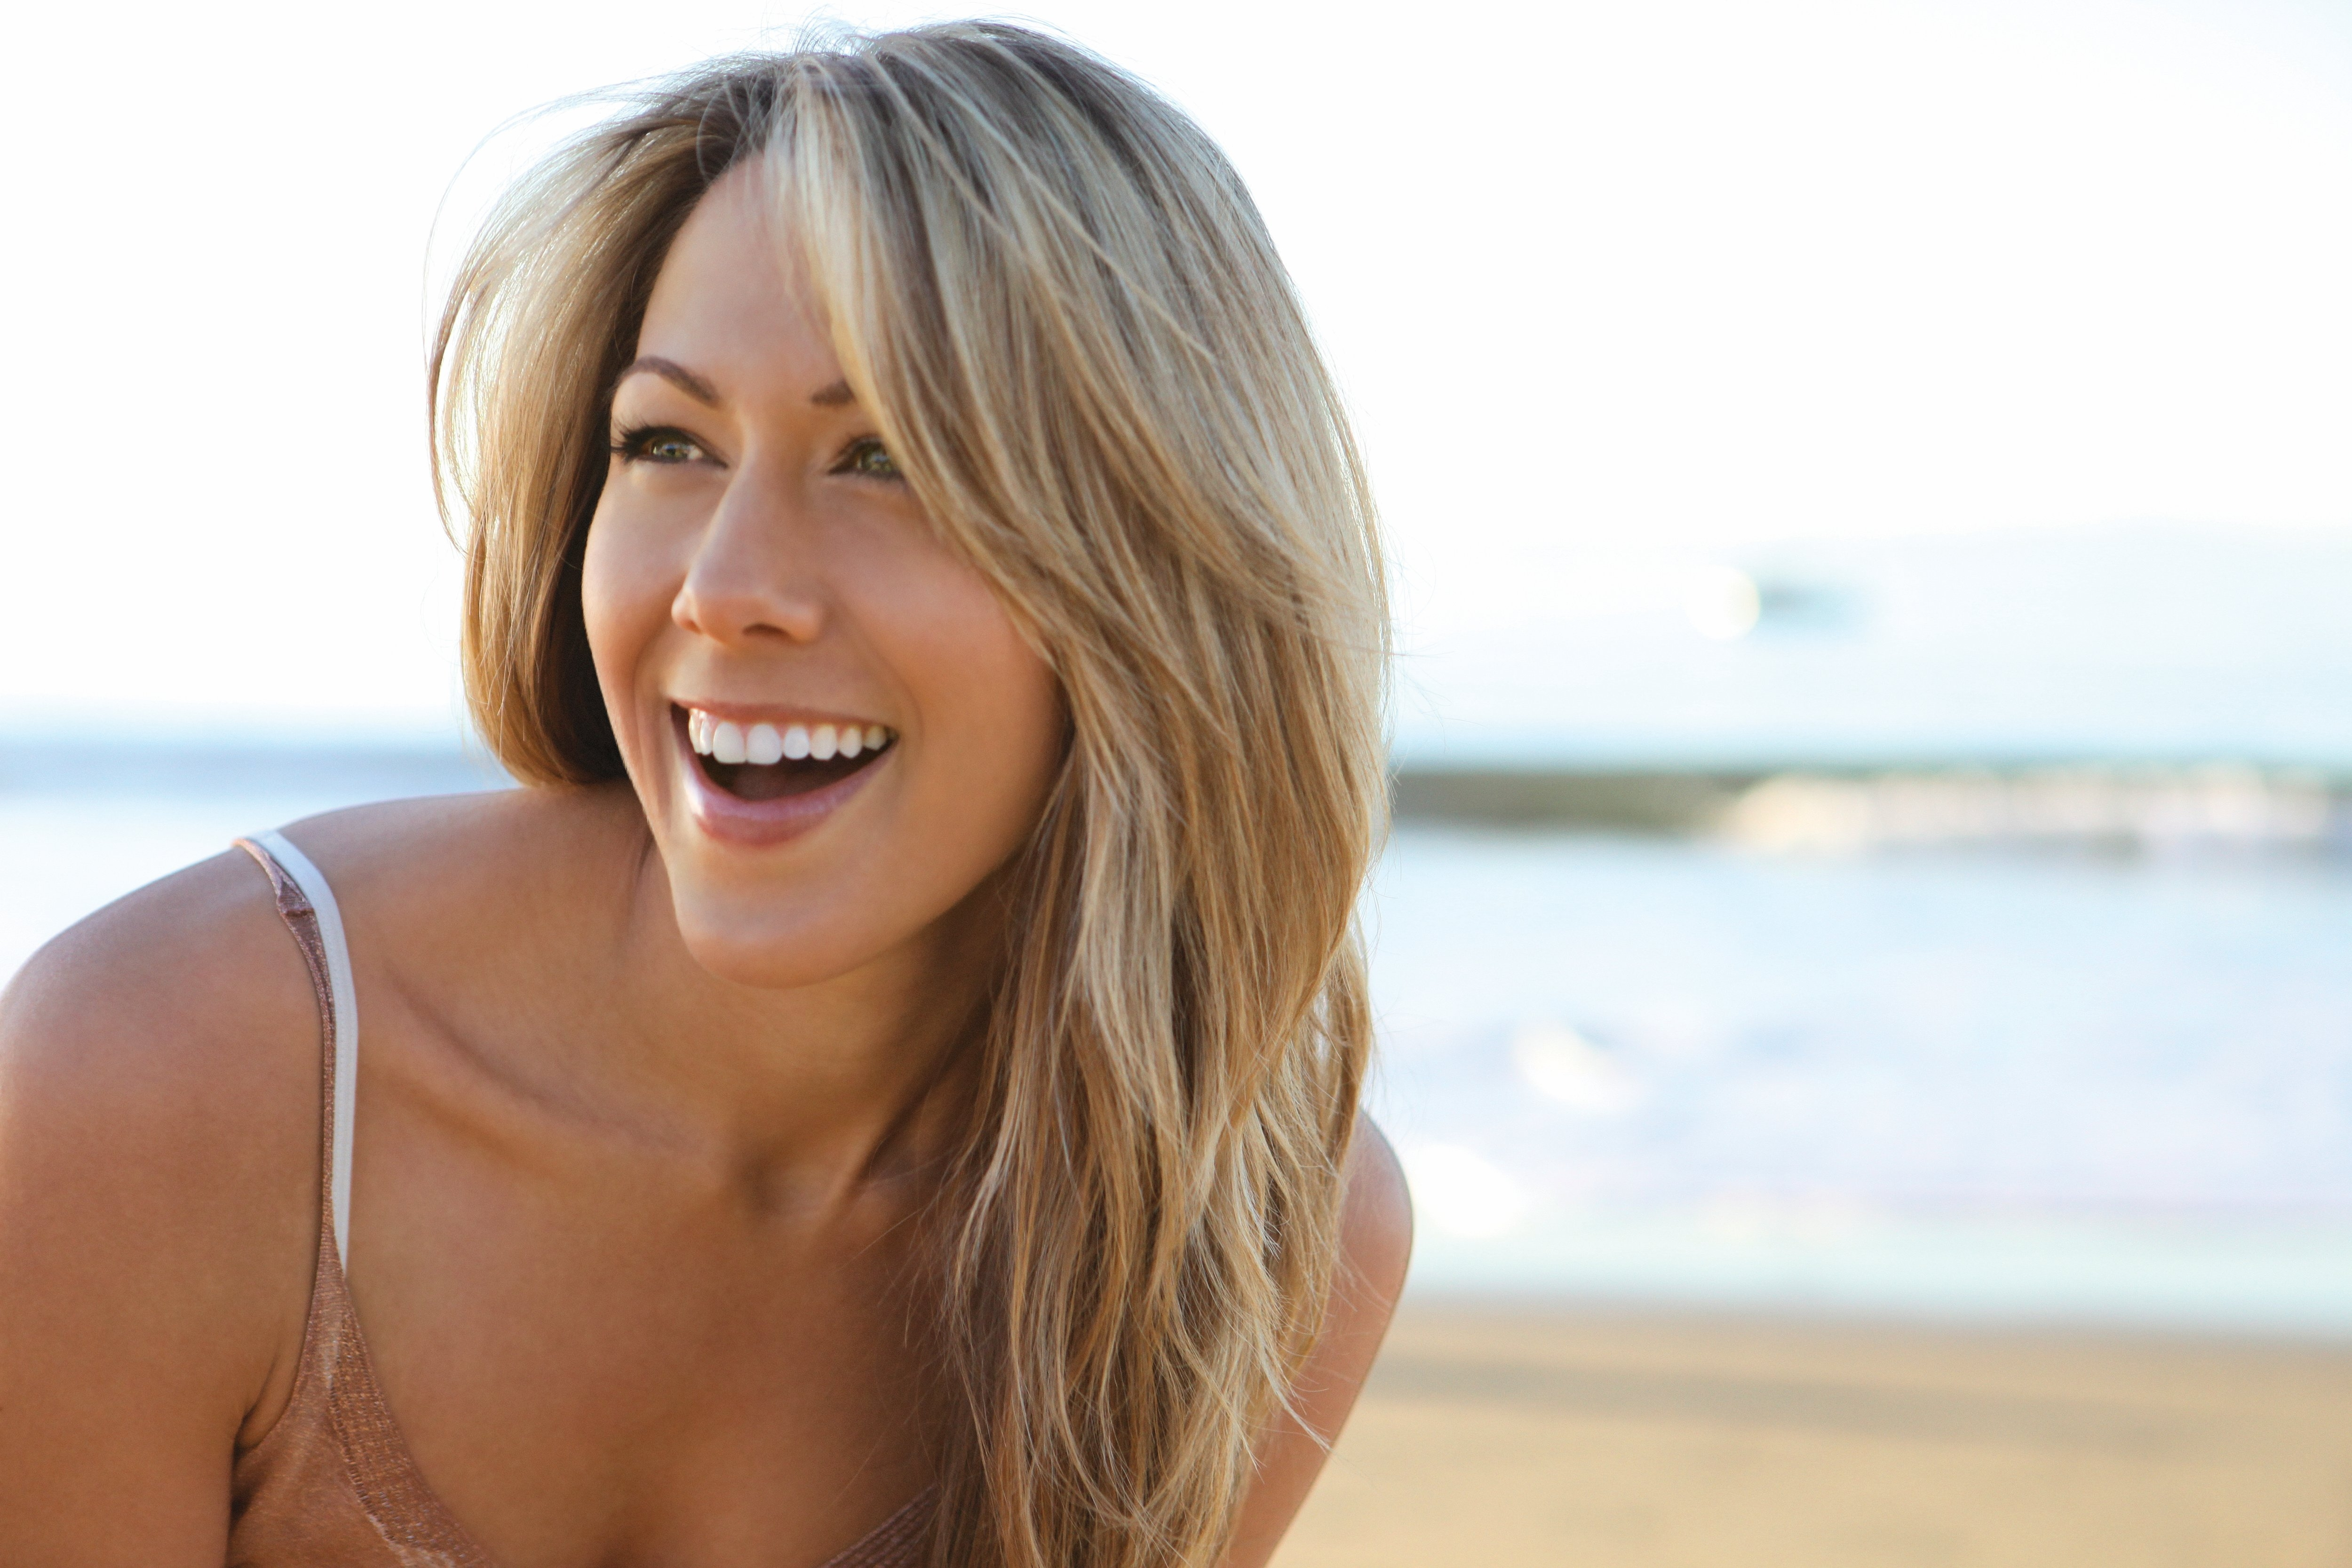 how tall is colbie caillat